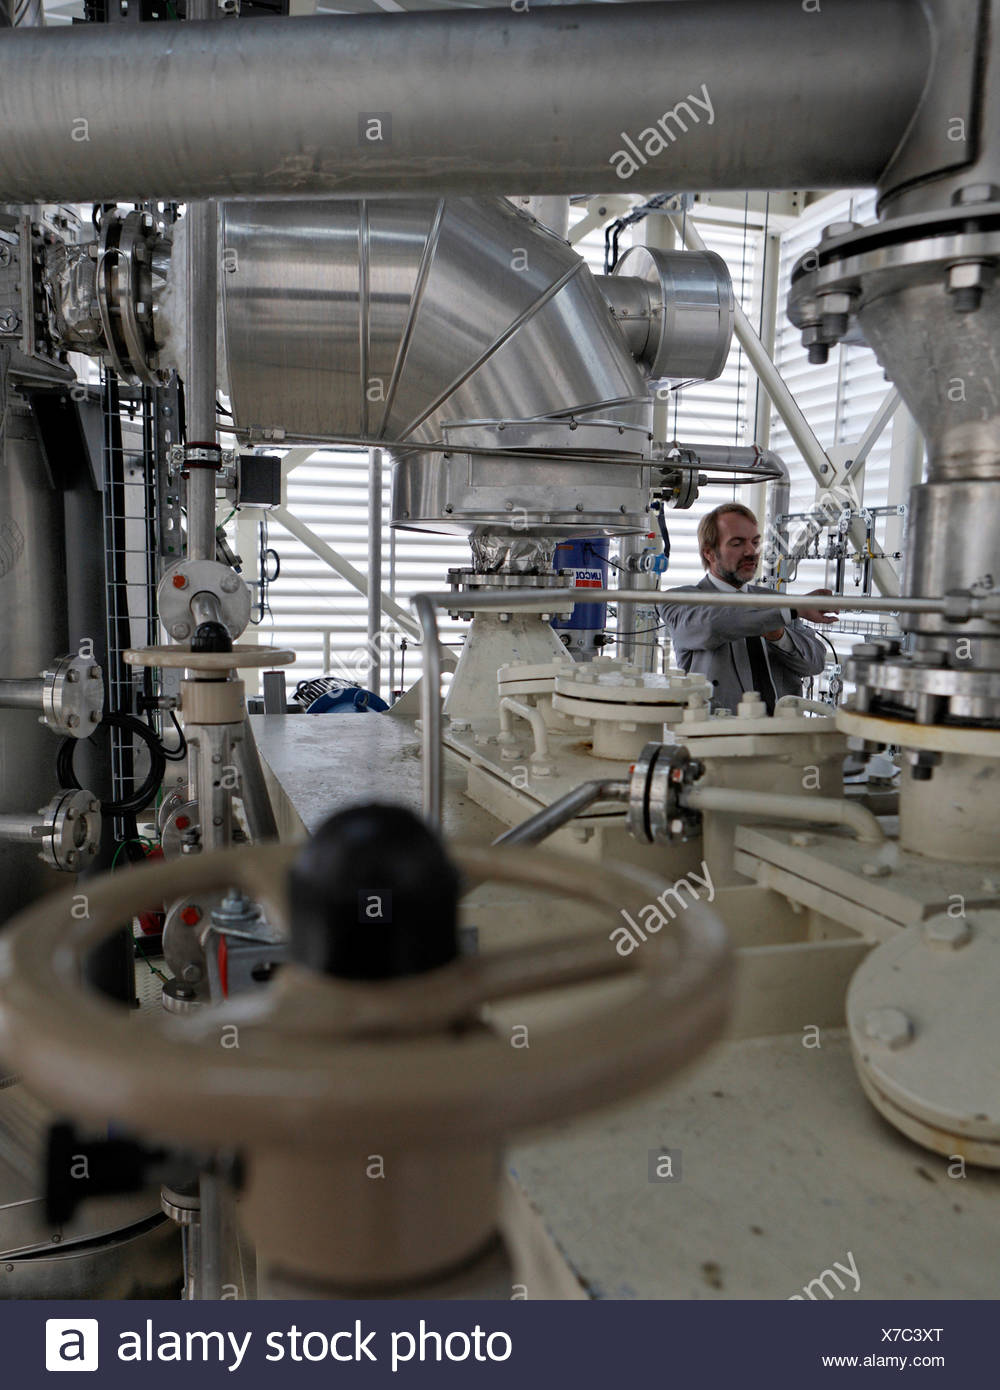 'bioliq' (biomass to liquid) process for the production of synthesis gas from biomass, Forschungszentrum Karlruhe (Karlsruhe Re - Stock Image